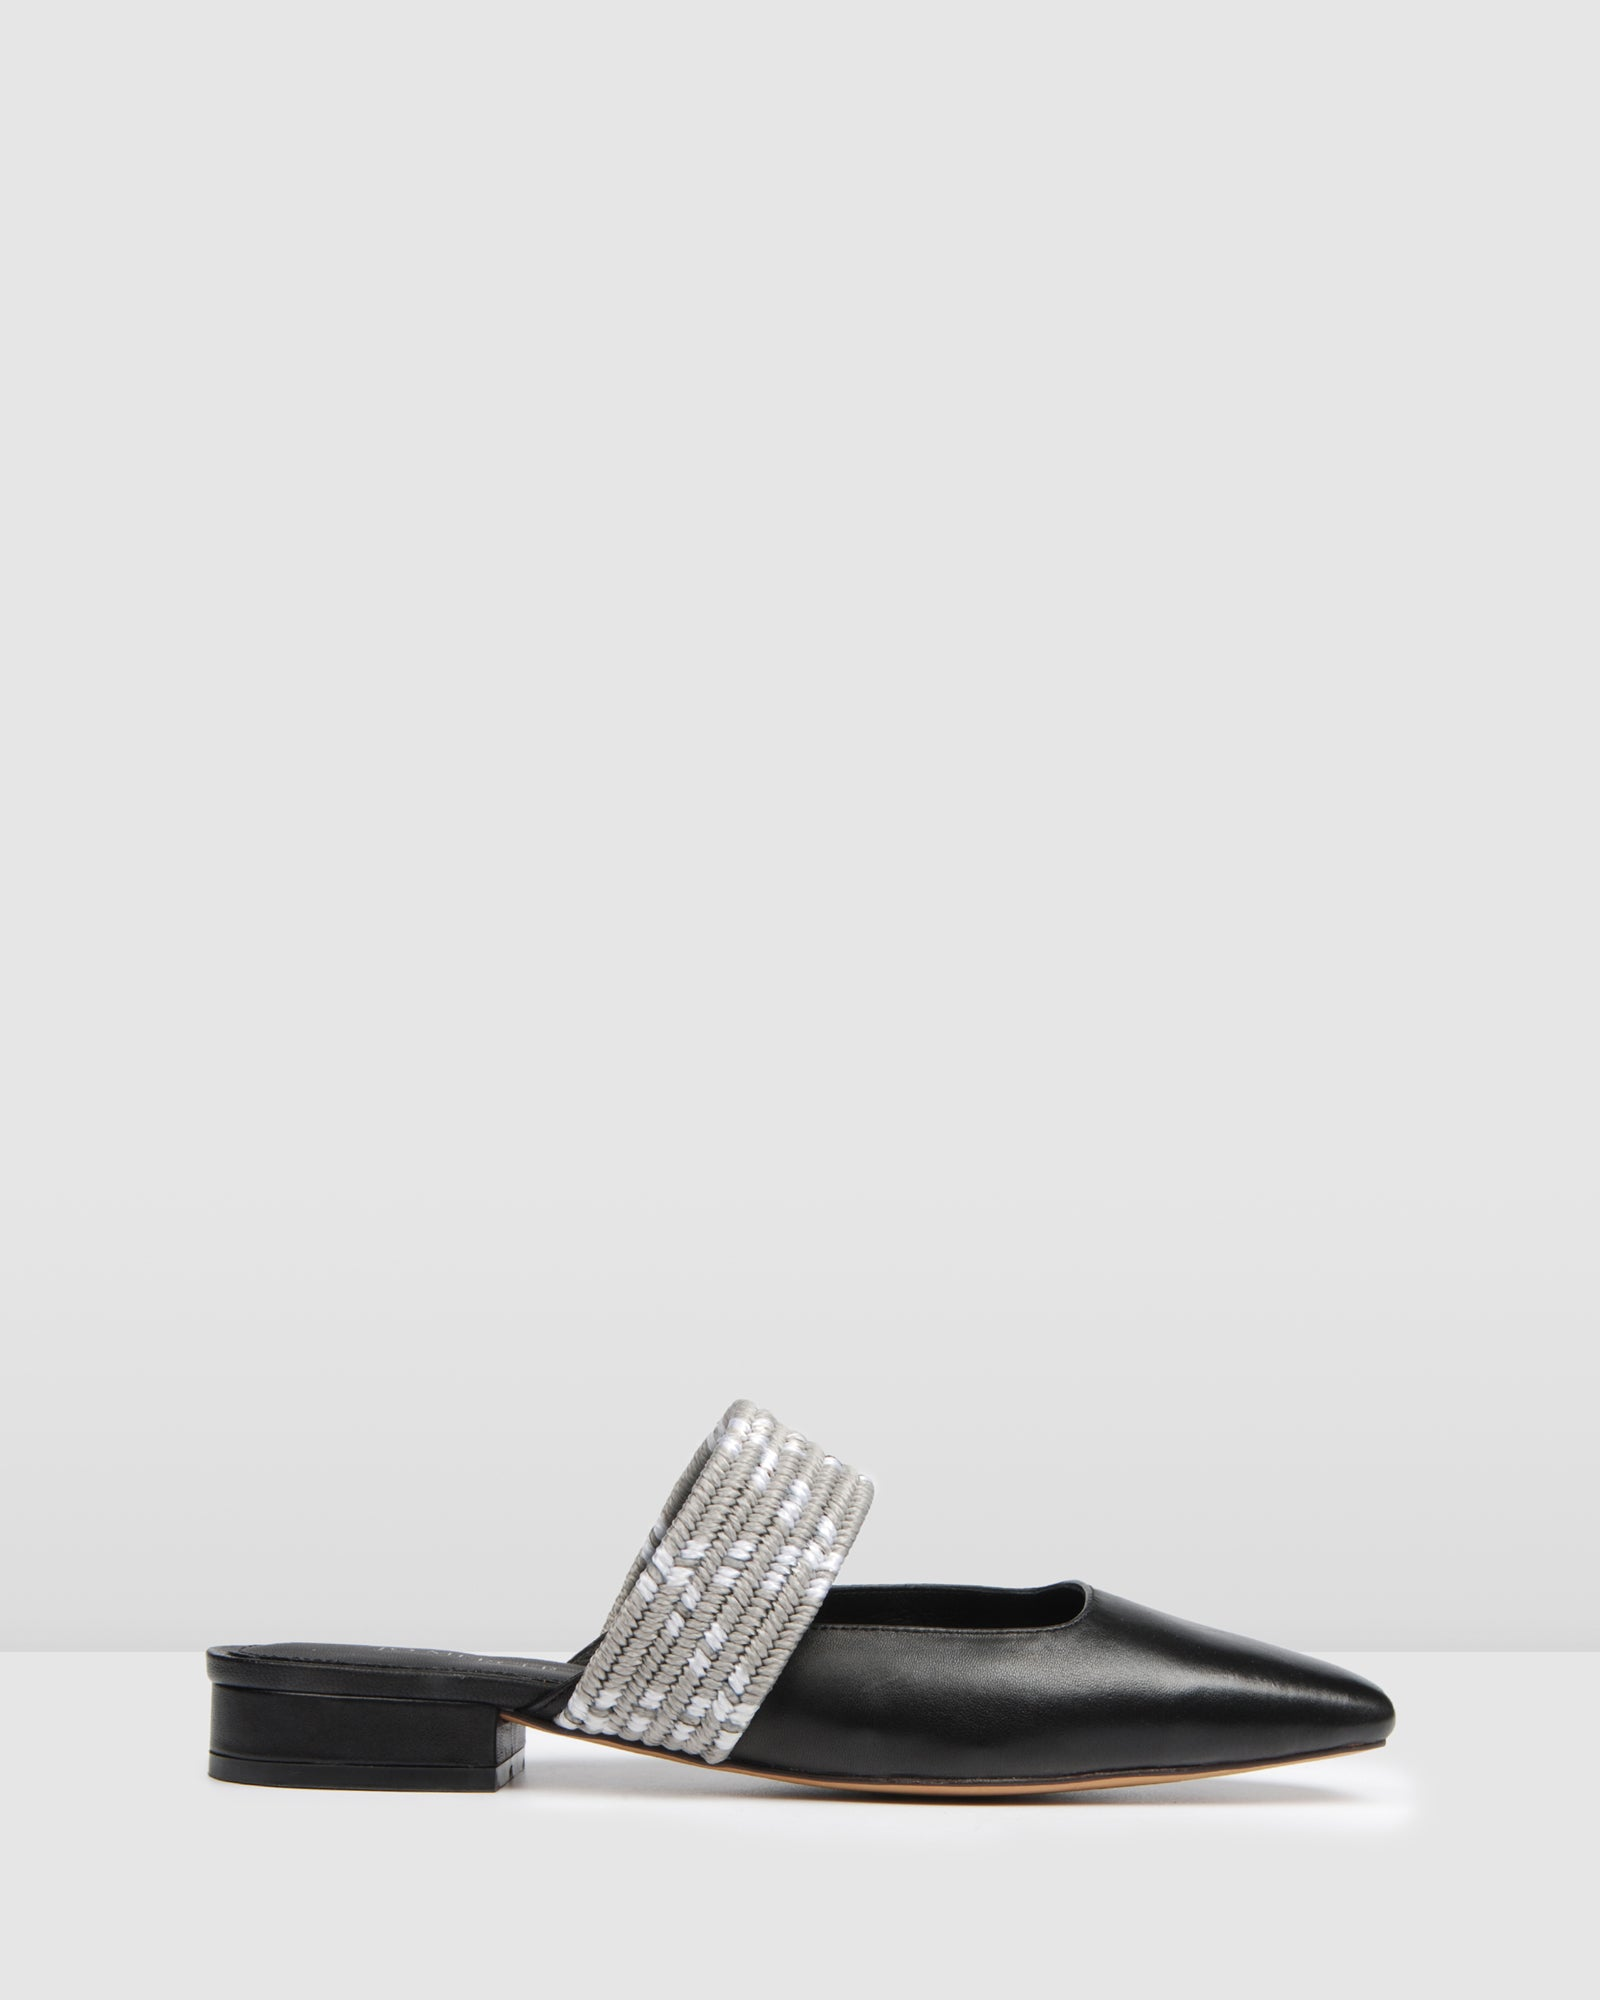 HAIL DRESS FLATS BLACK LEATHER